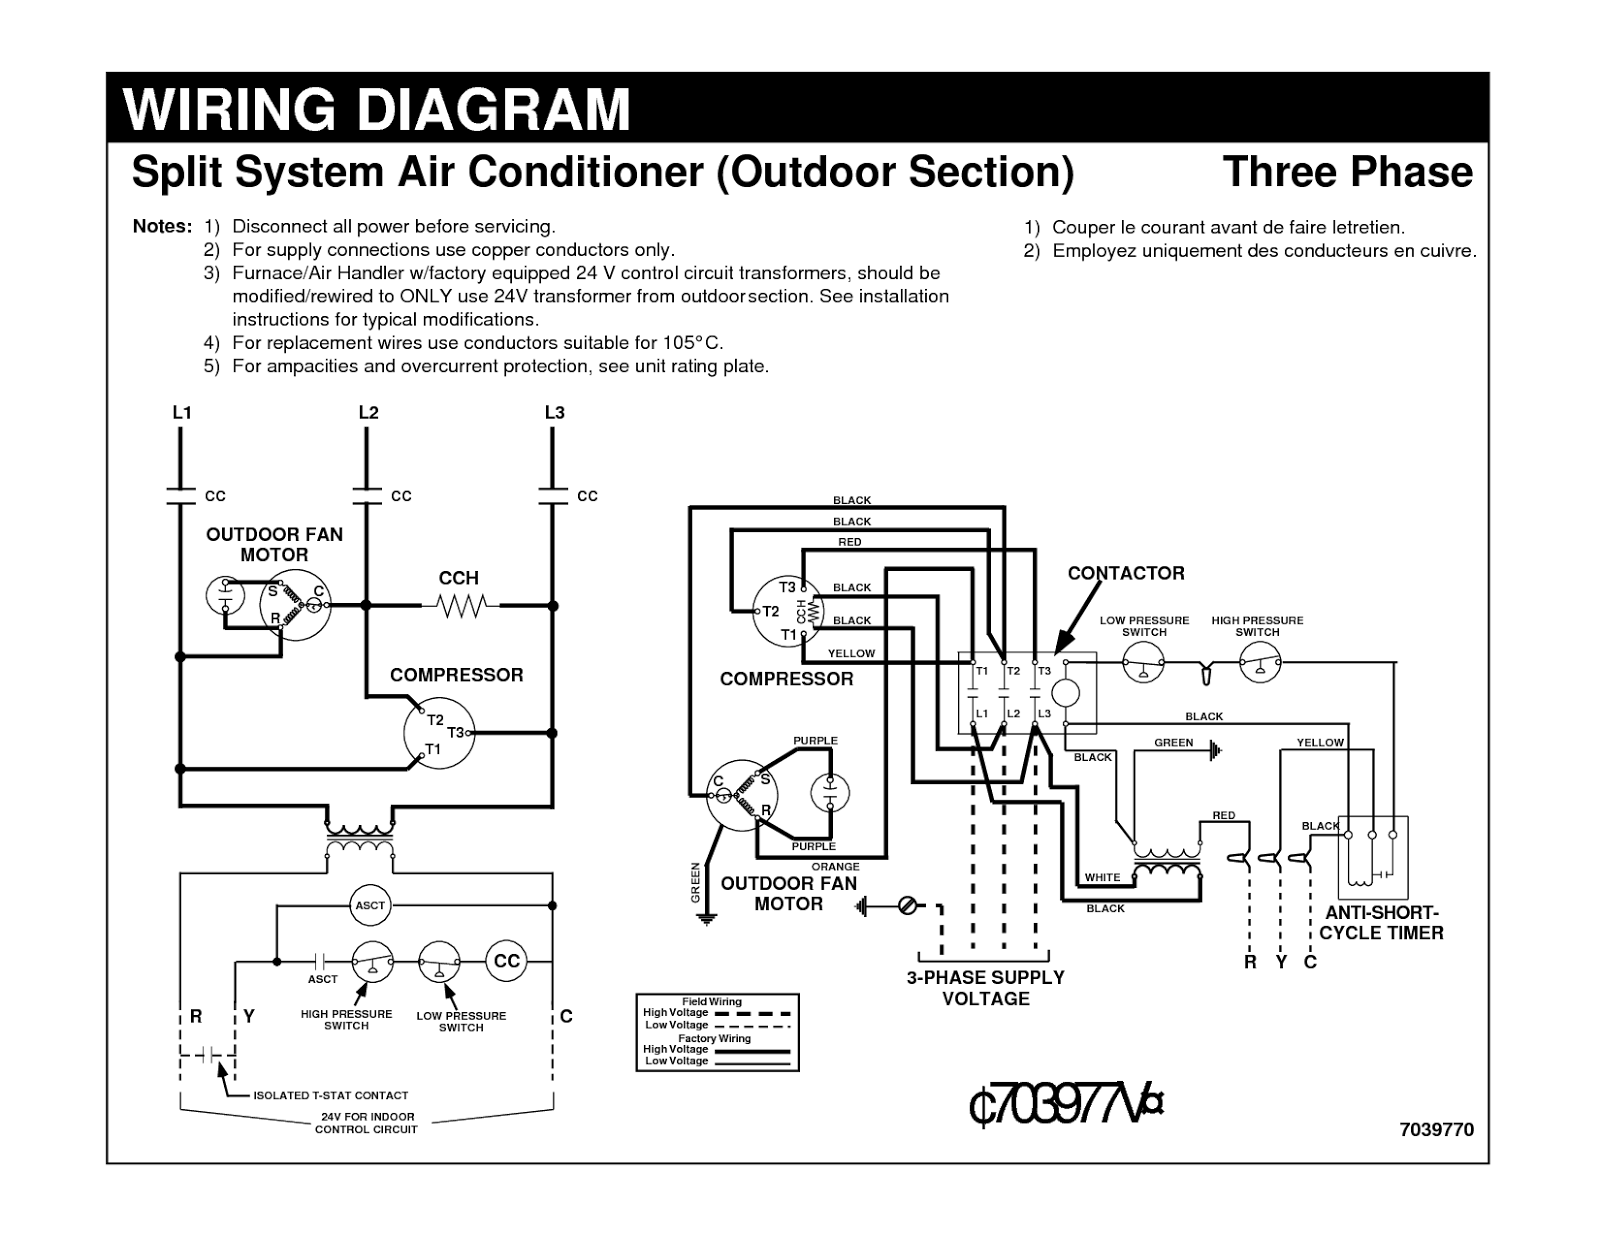 wiring+diagram+in+the+user+manual electrical wiring diagrams for air conditioning systems part one electrical wiring diagrams at creativeand.co